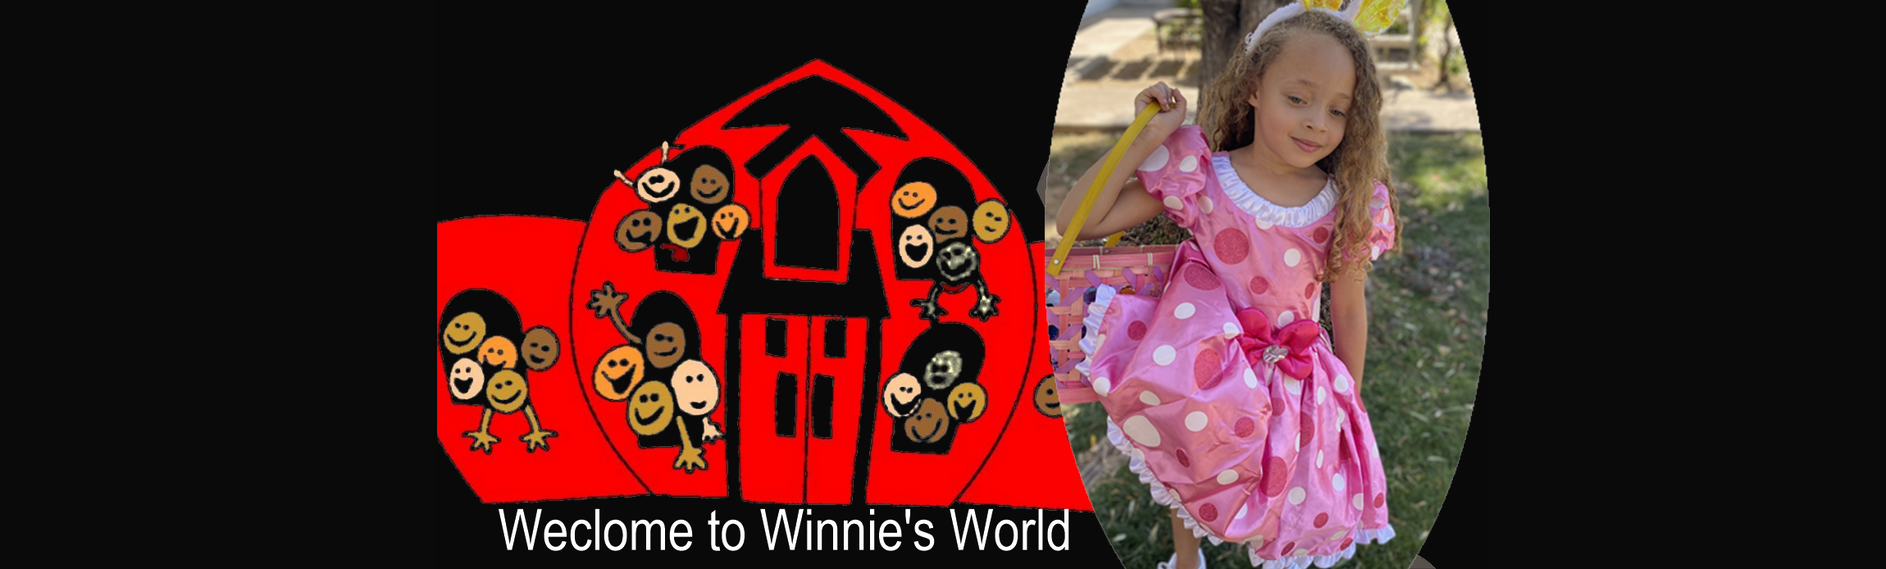 Welcome to Winnie's World 3.png